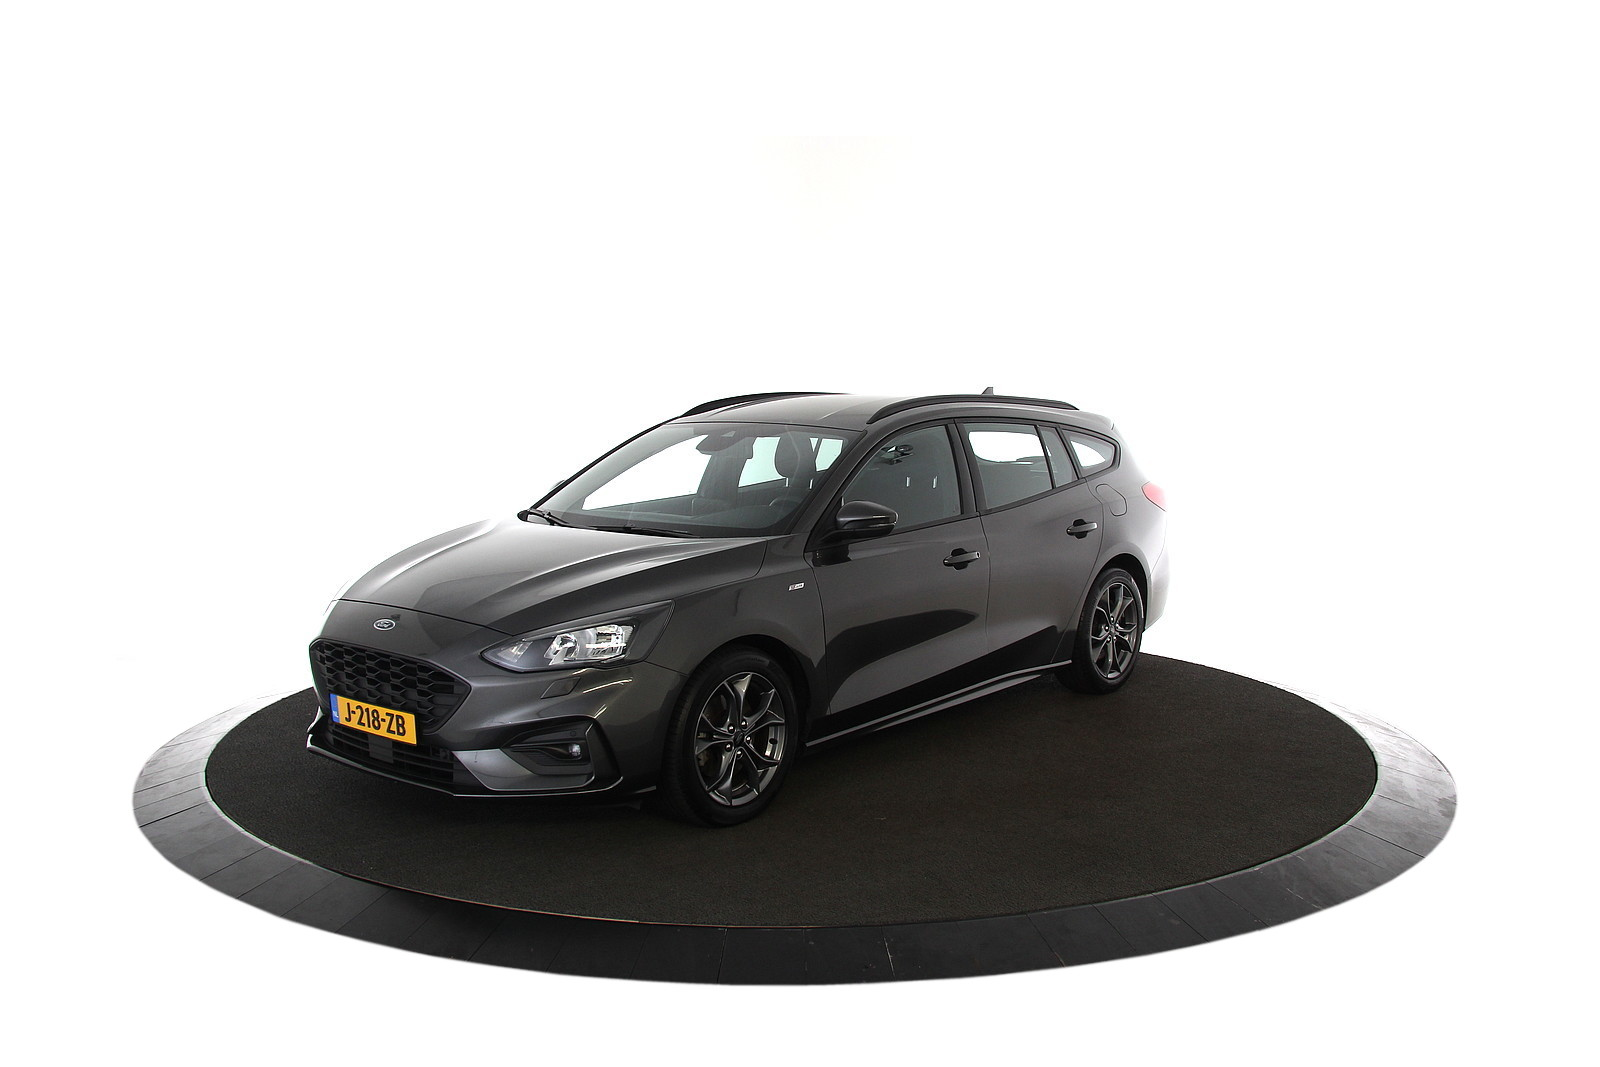 Ford Focus Wagon 1.5 EcoBoost ST Line Automaat